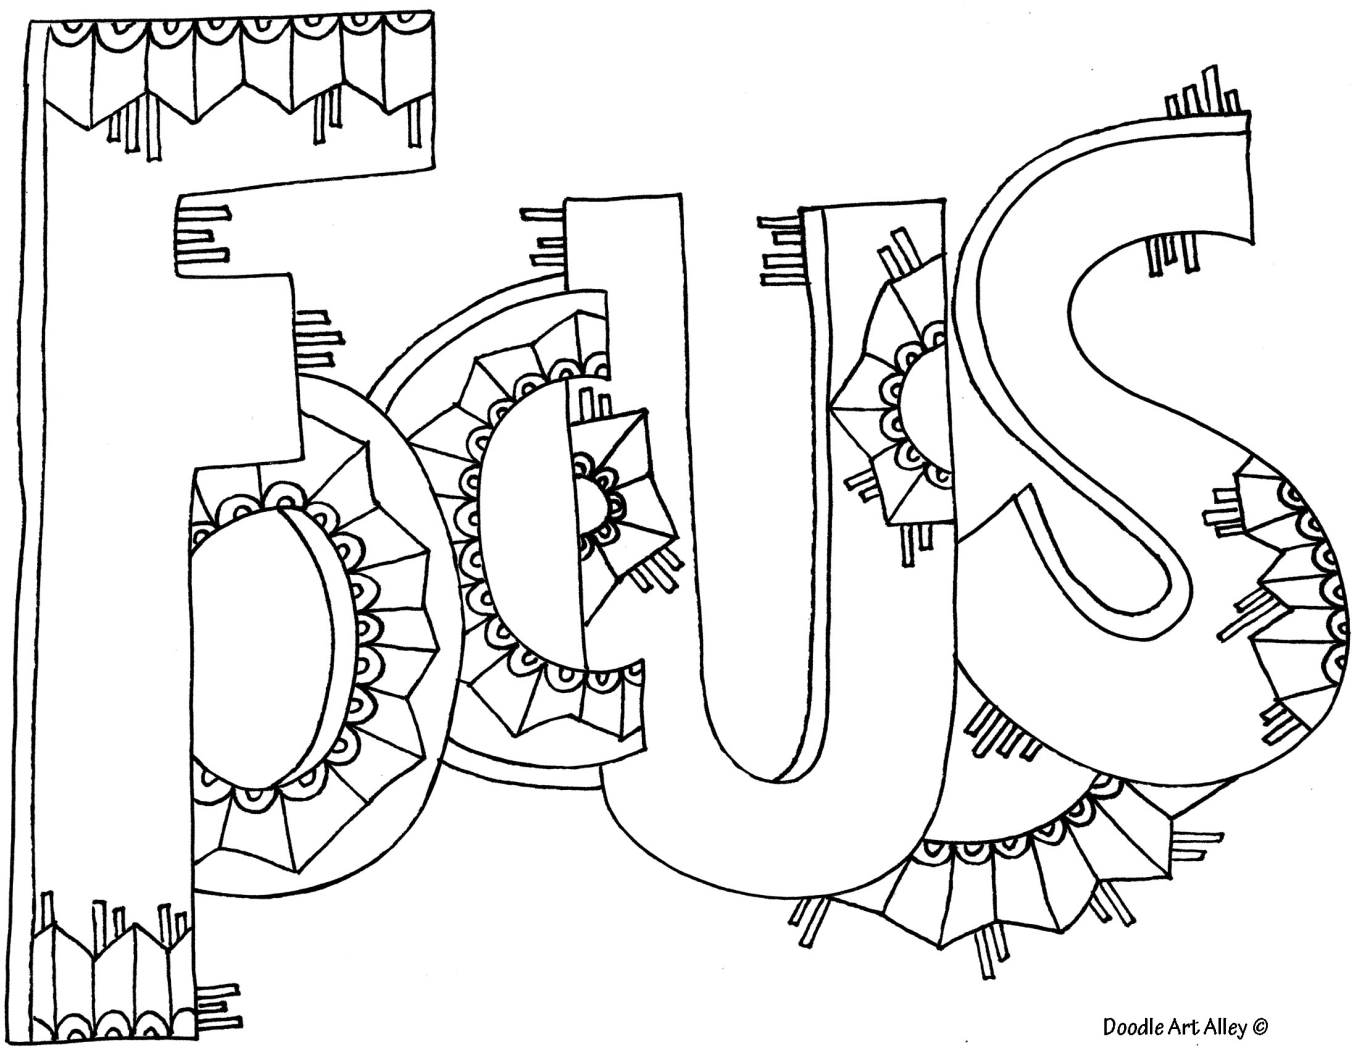 Free File Sharing And Storage Made Simple Coloring Pages Quote Coloring Pages Free Printable Coloring Pages